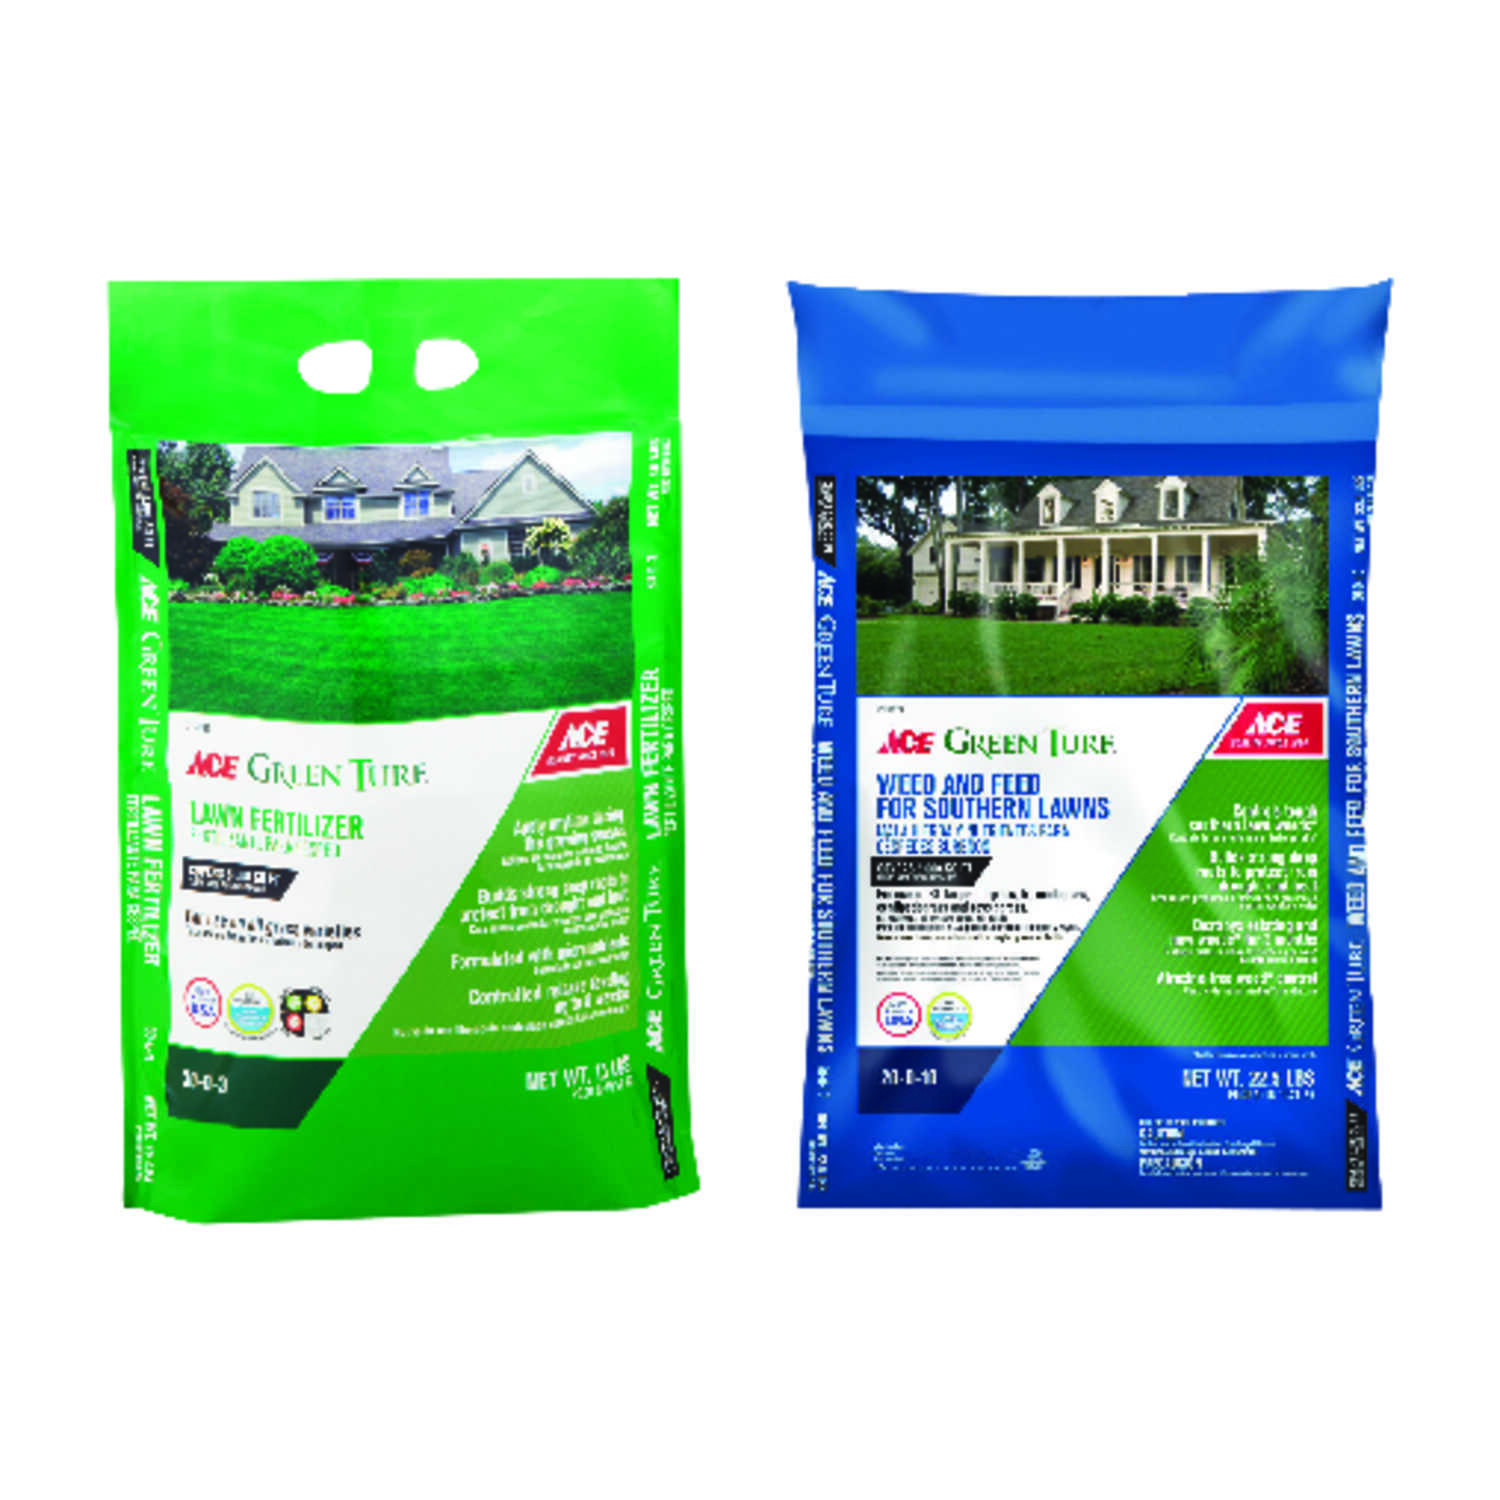 Ace  Green Turf  30-0-3  Lawn Fertilizer  For Southern 15 lb.